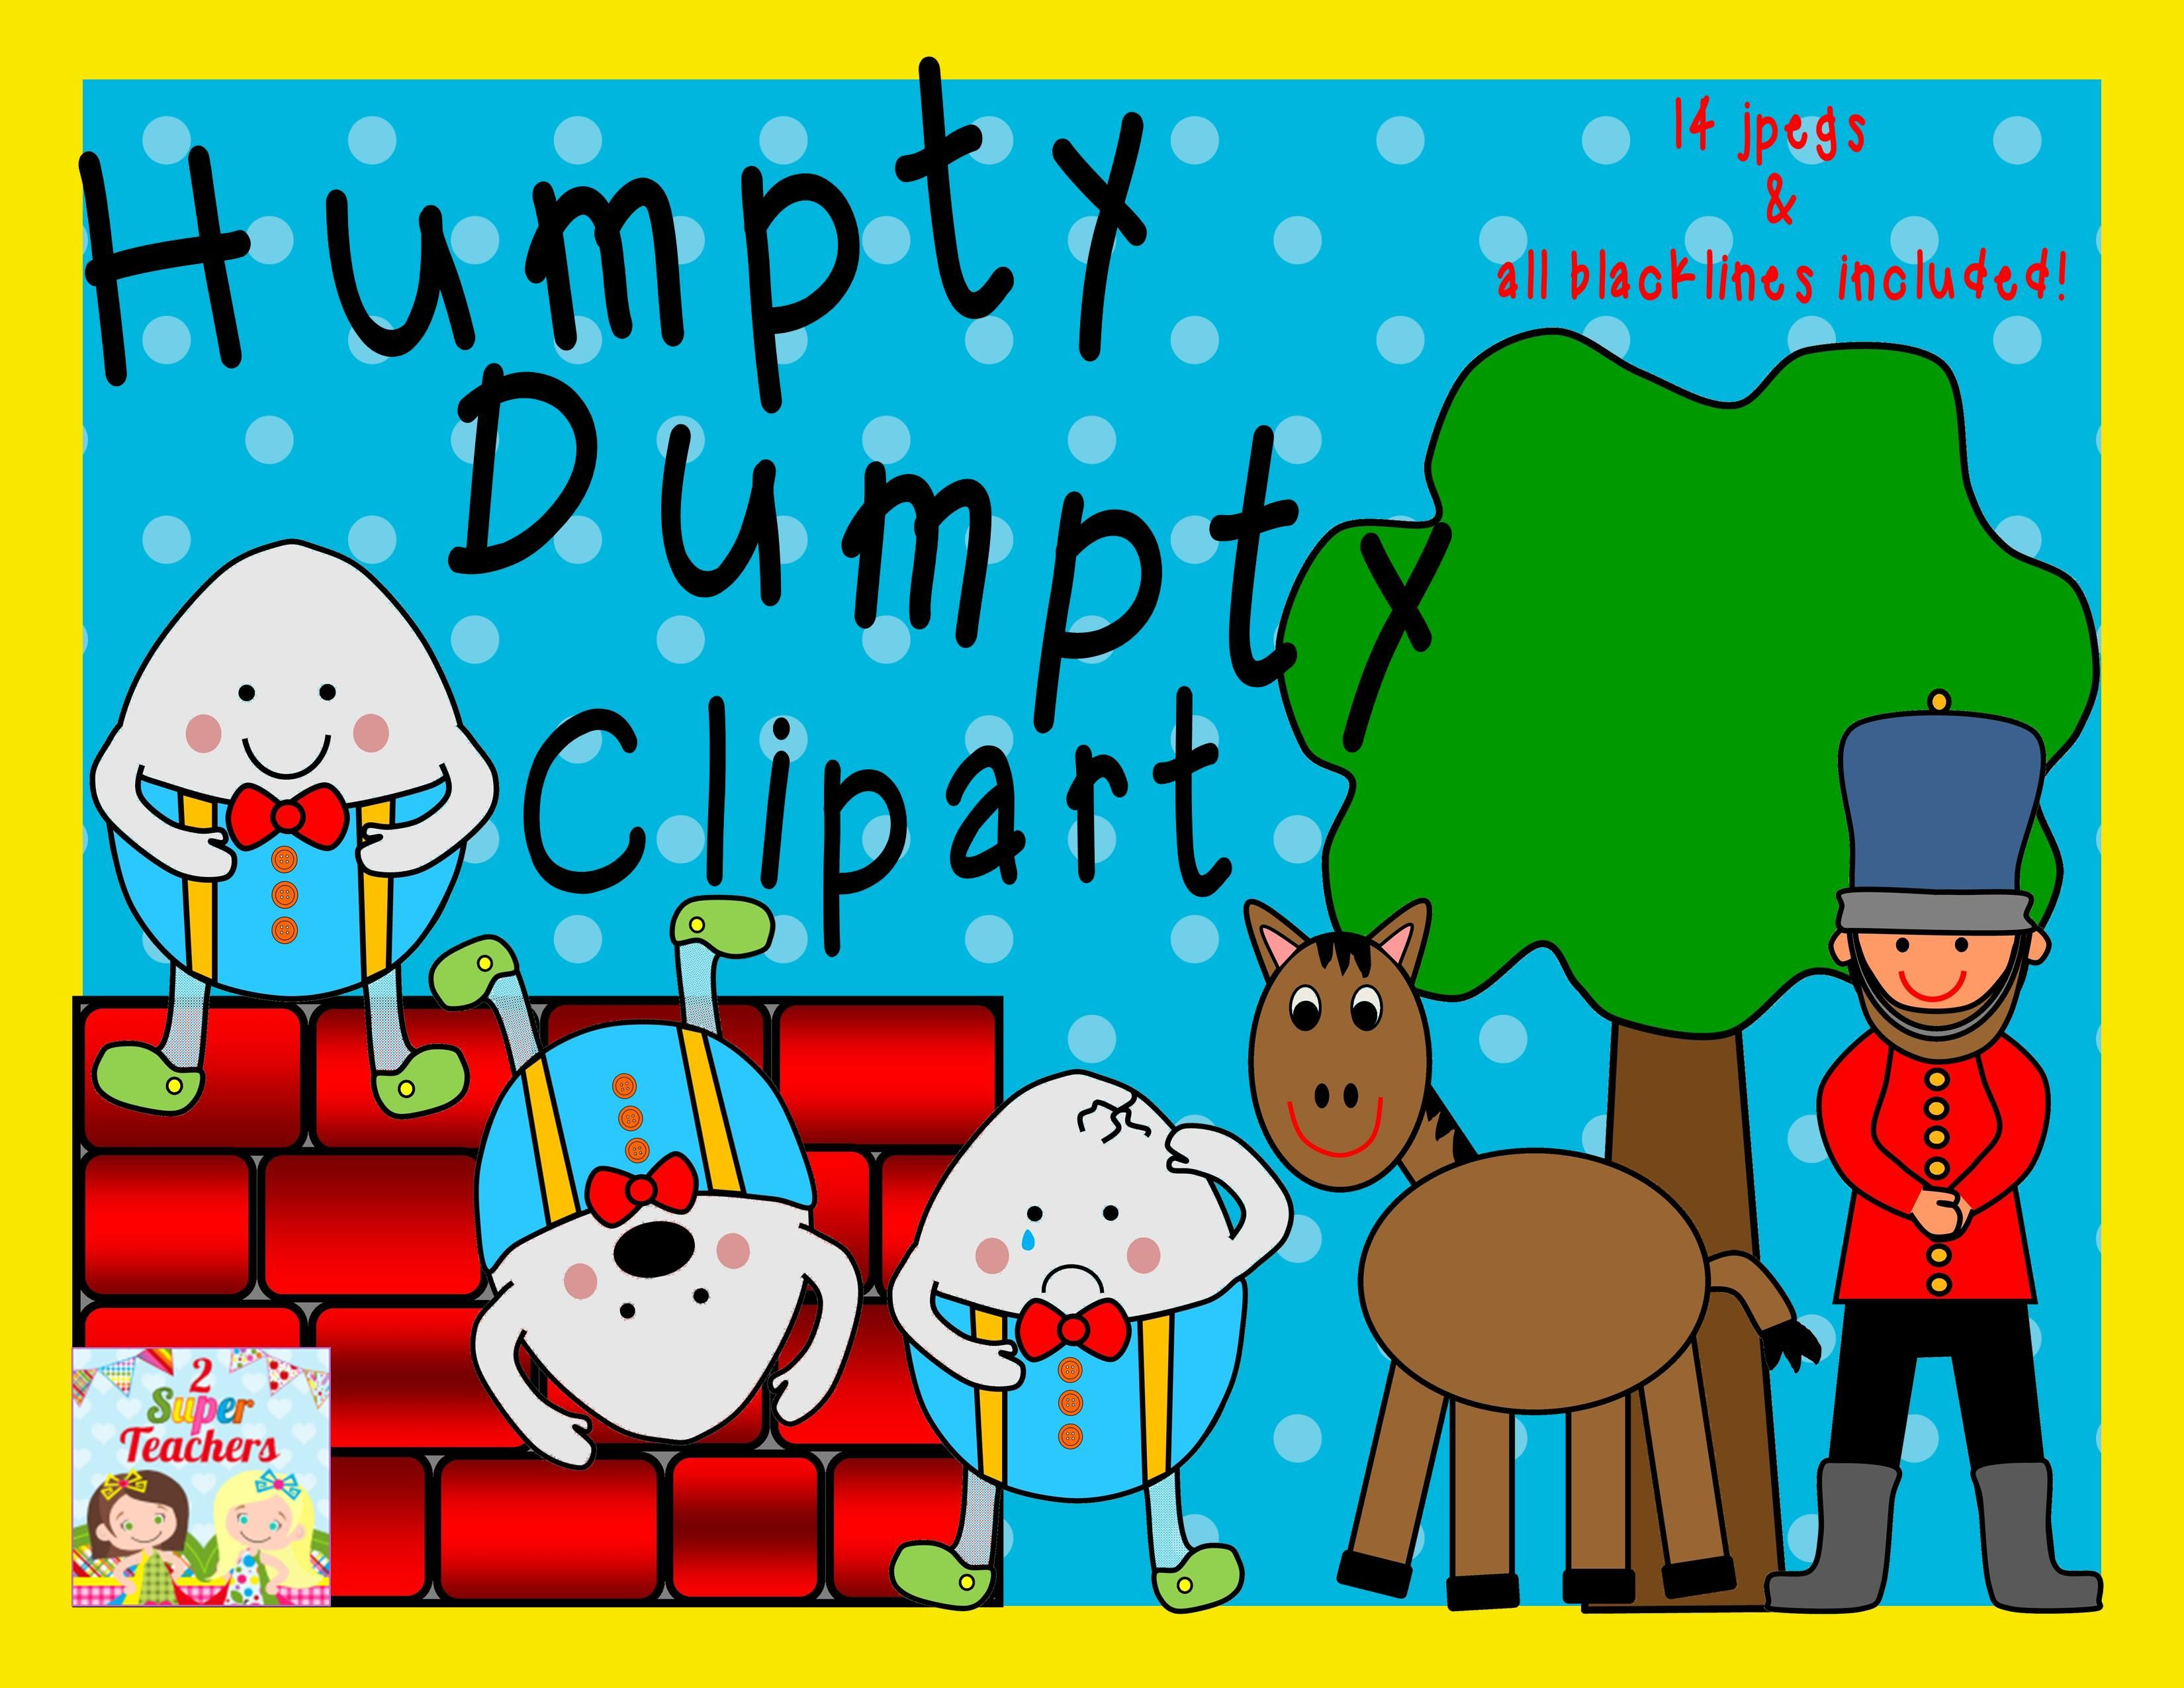 Clip Art Humpty Dumpty Clip Art 1000 images about who pushed humpty dumpty on pinterest clipart pack 14 jpegs all blacklines included 2super teachers